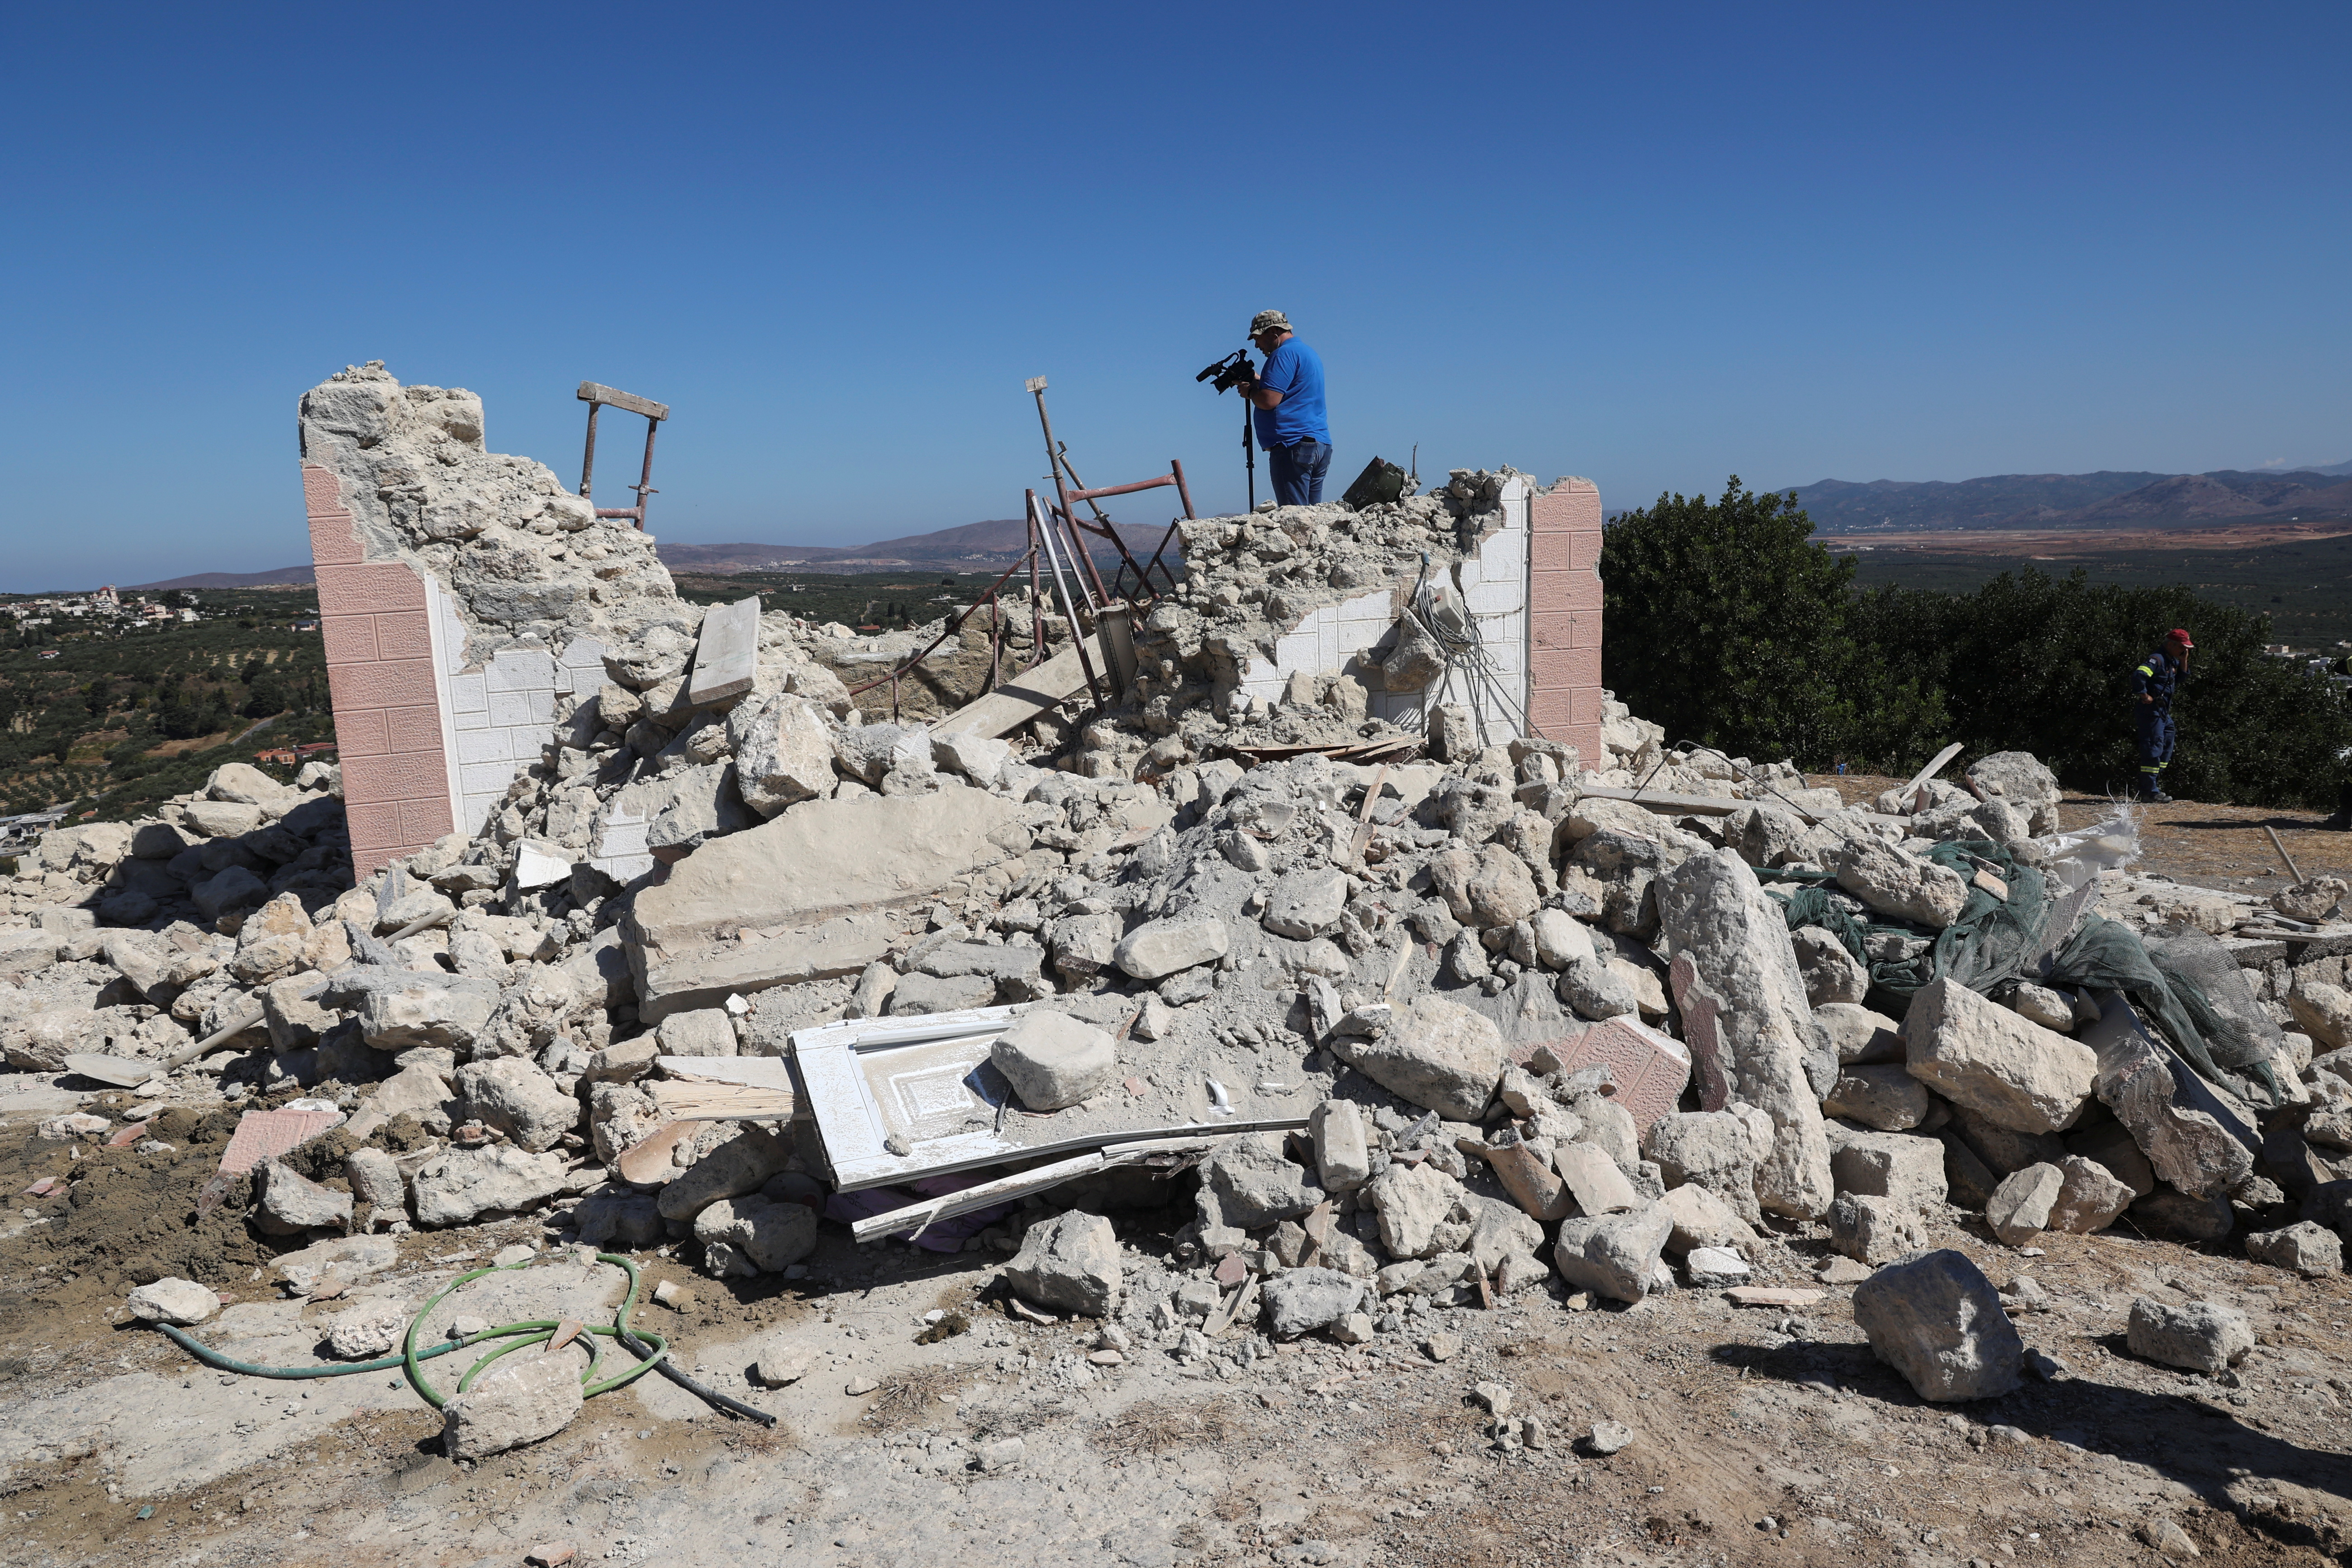 A camera operator films amid the rubble of a demolished church following an earthquake, in the town of Arkalochori on the island of Crete, Greece, September 27, 2021. REUTERS/Stefanos Rapanis